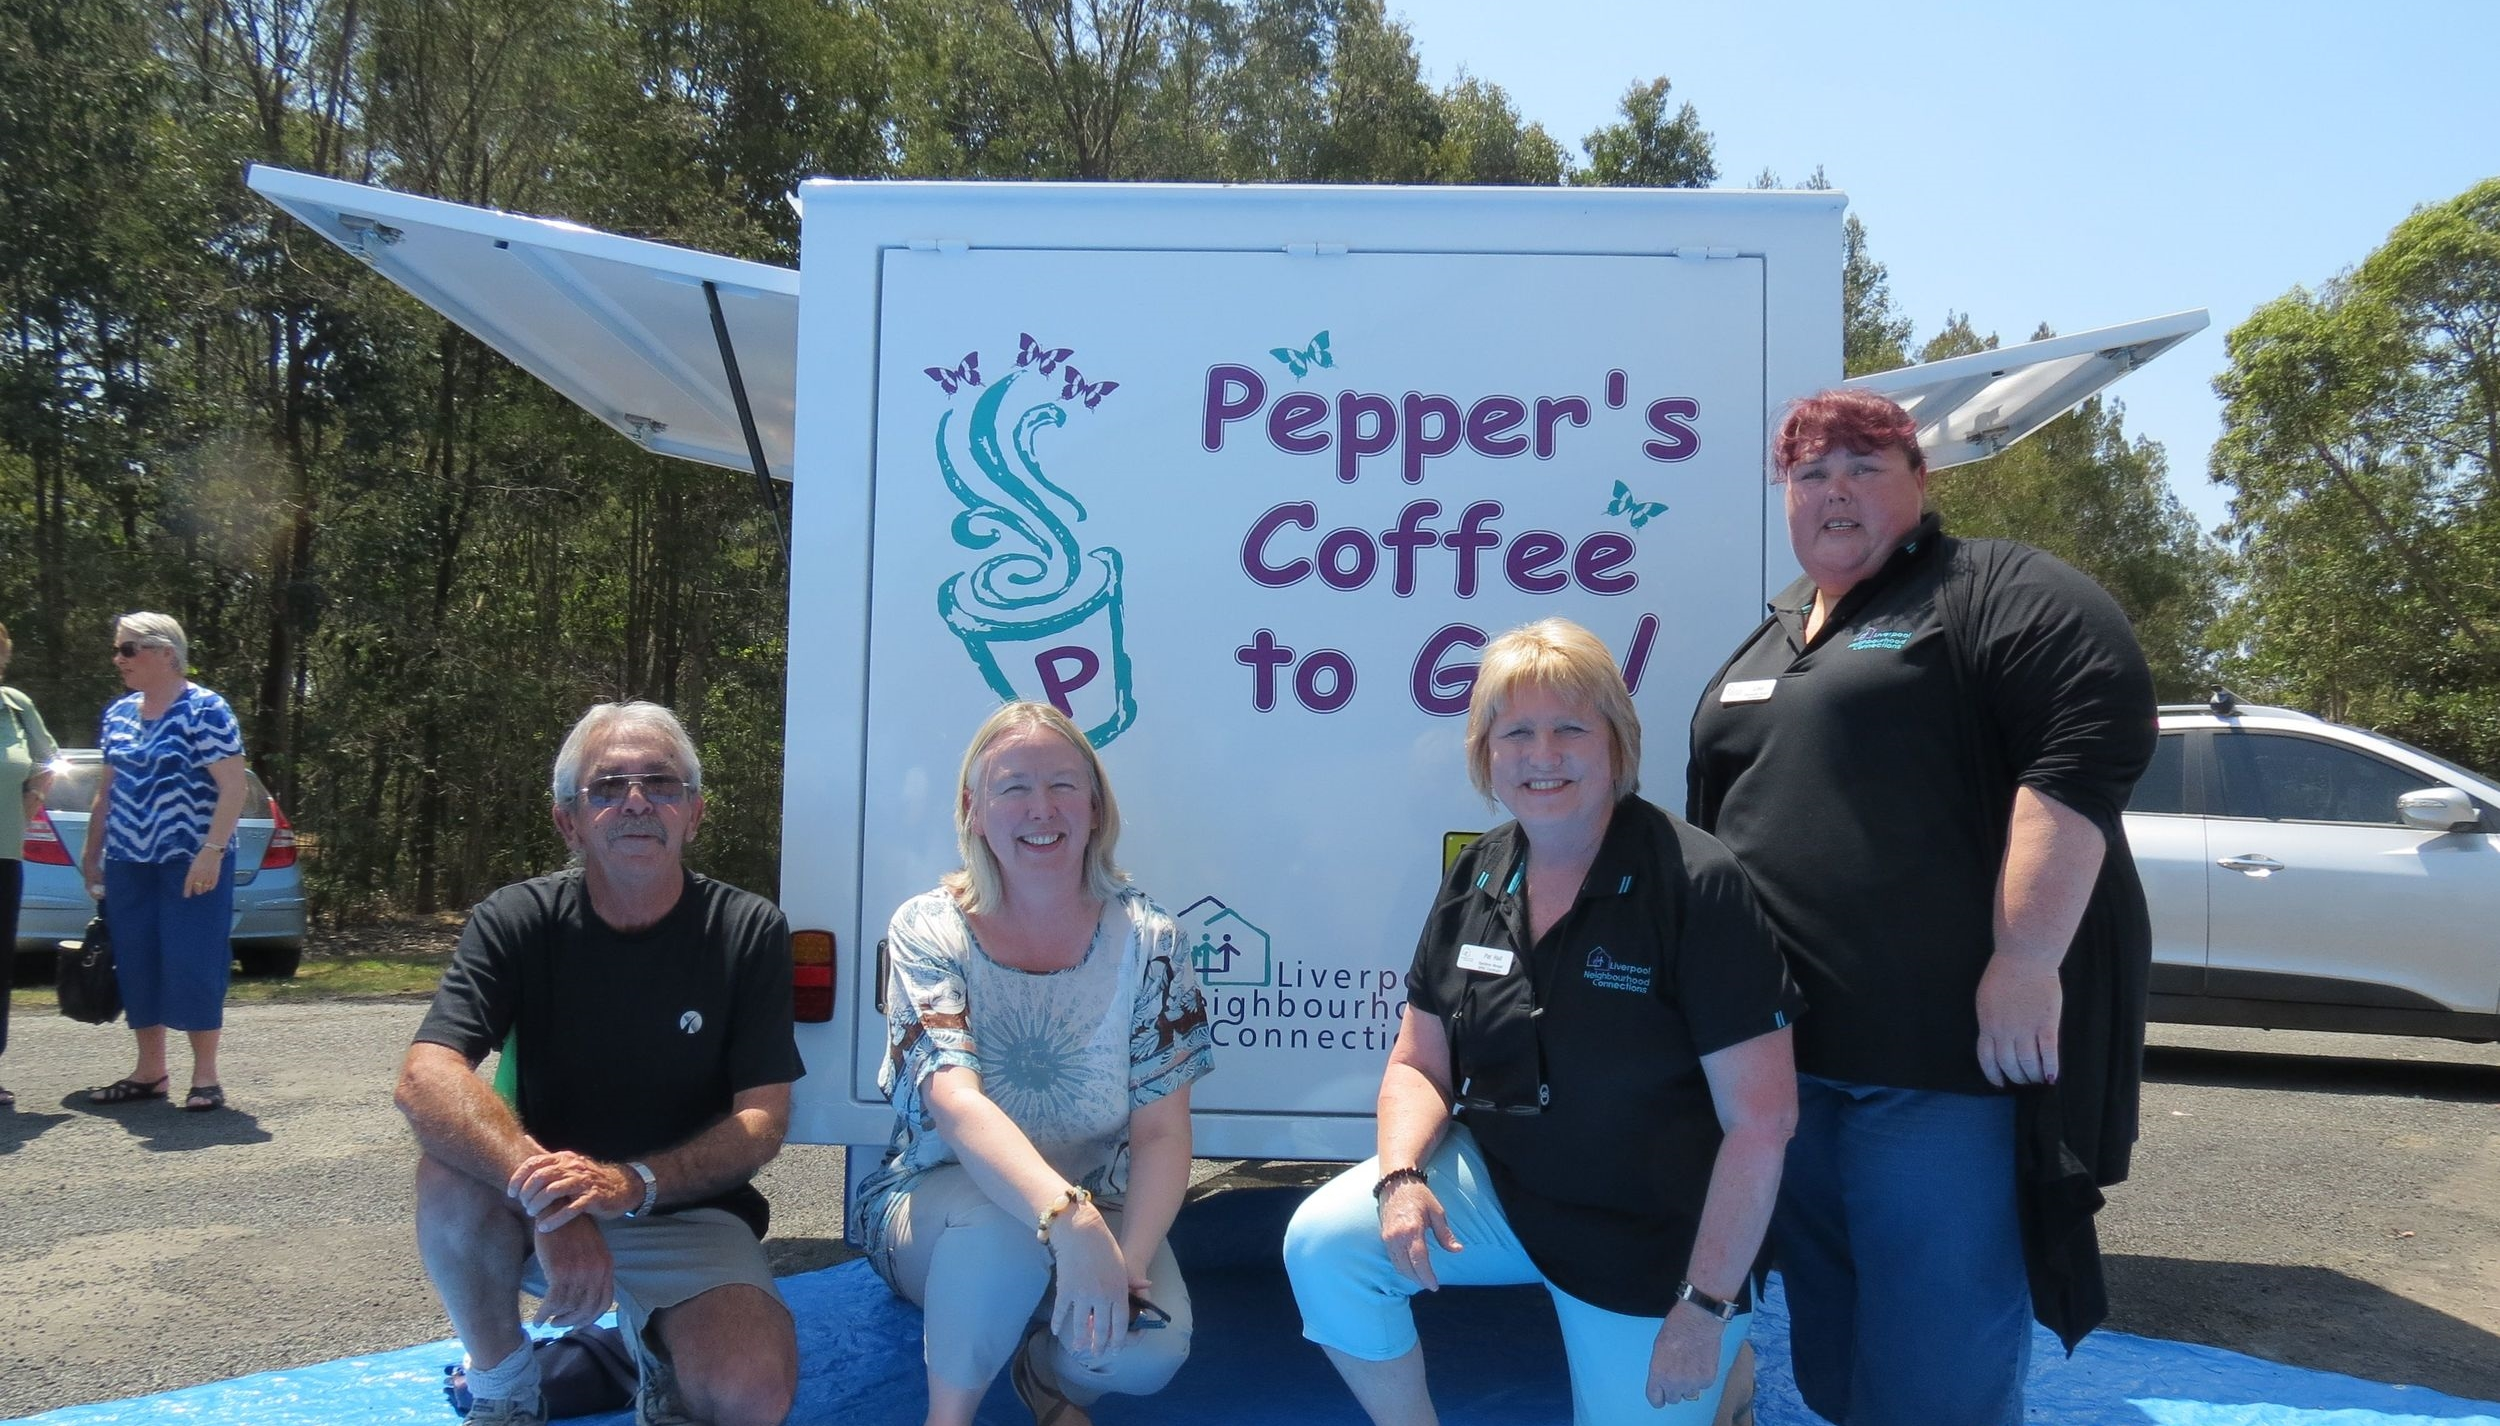 Pepper's Coffee to go